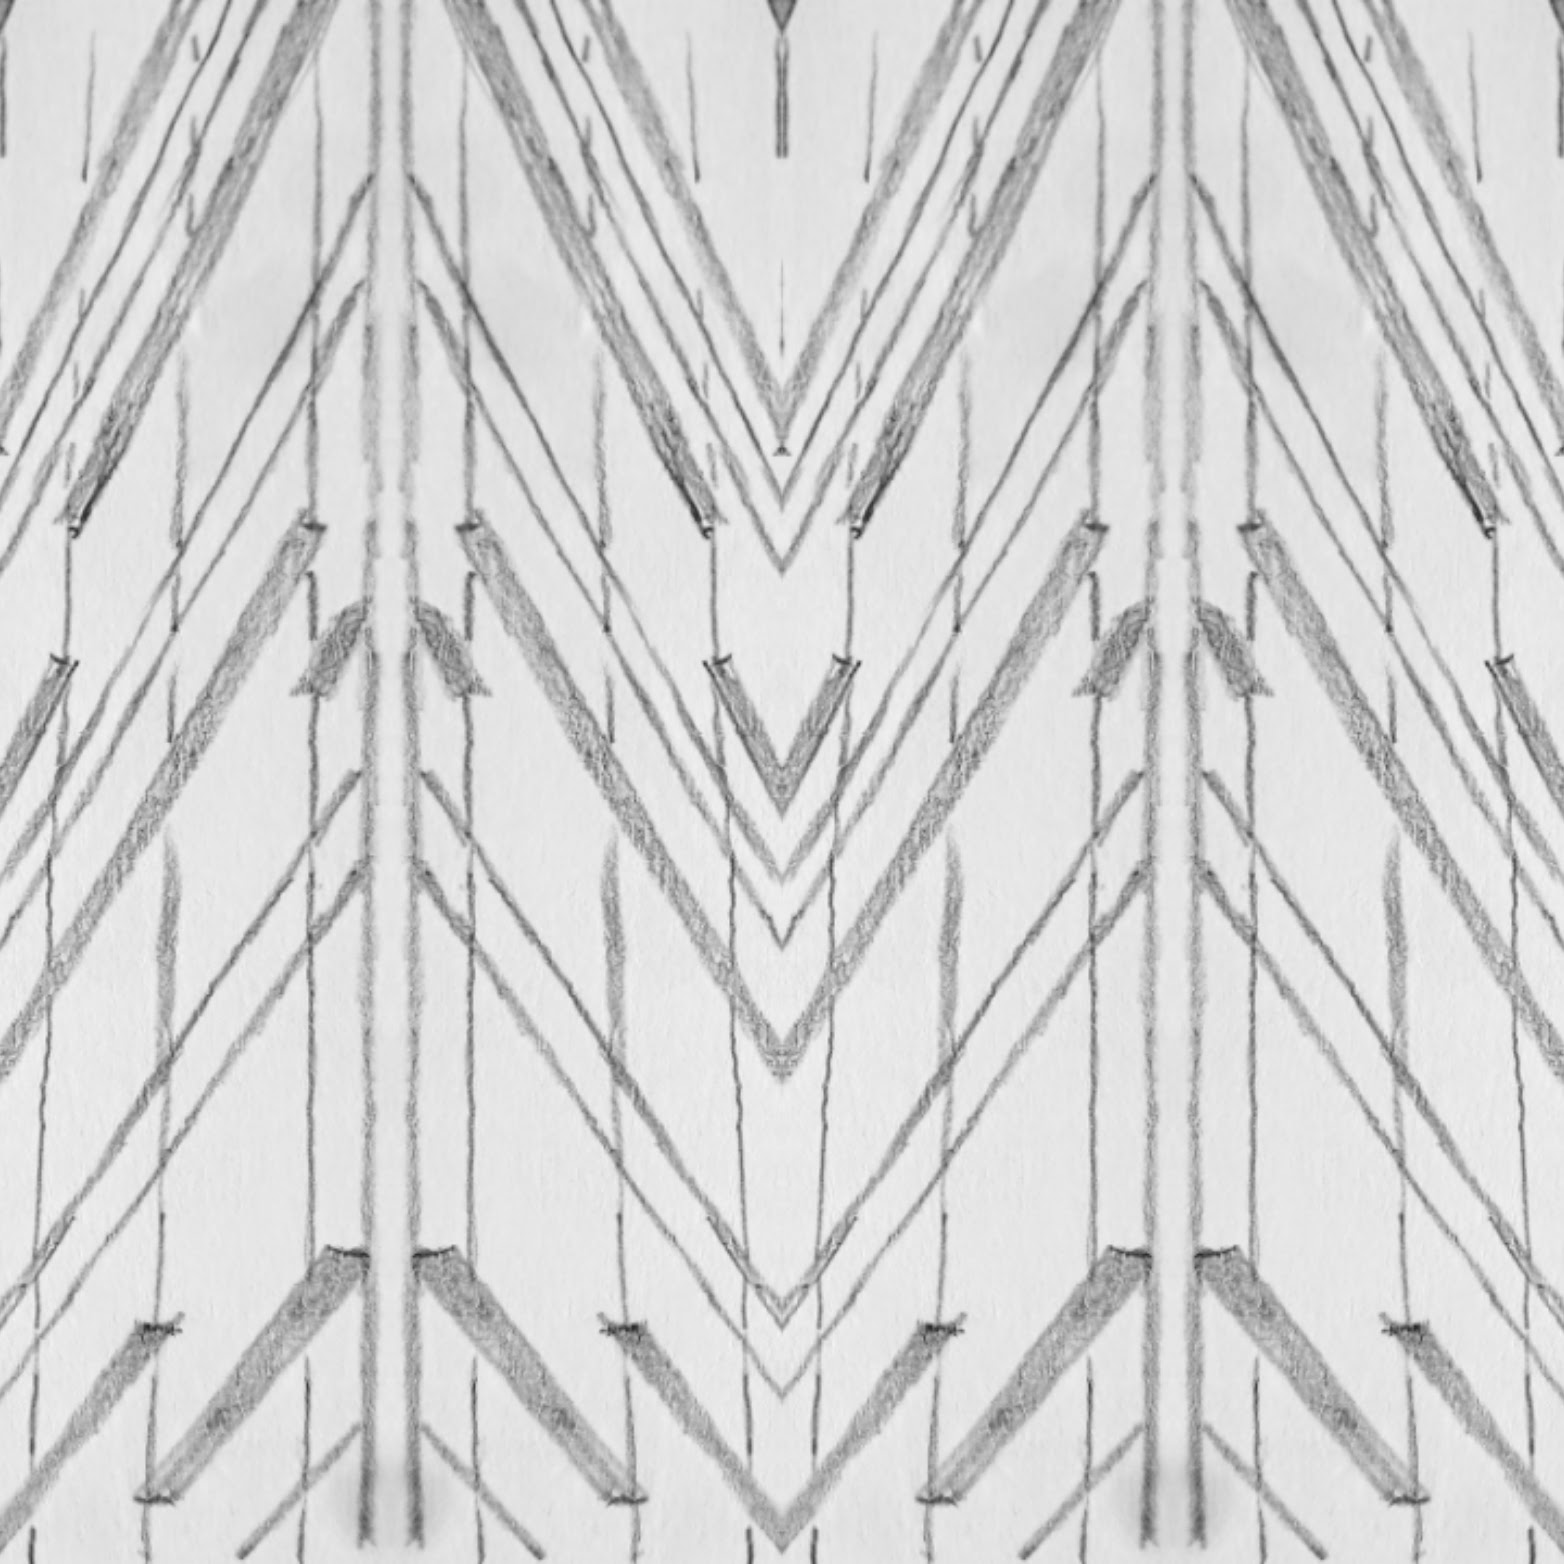 architectural pattern drawing 1